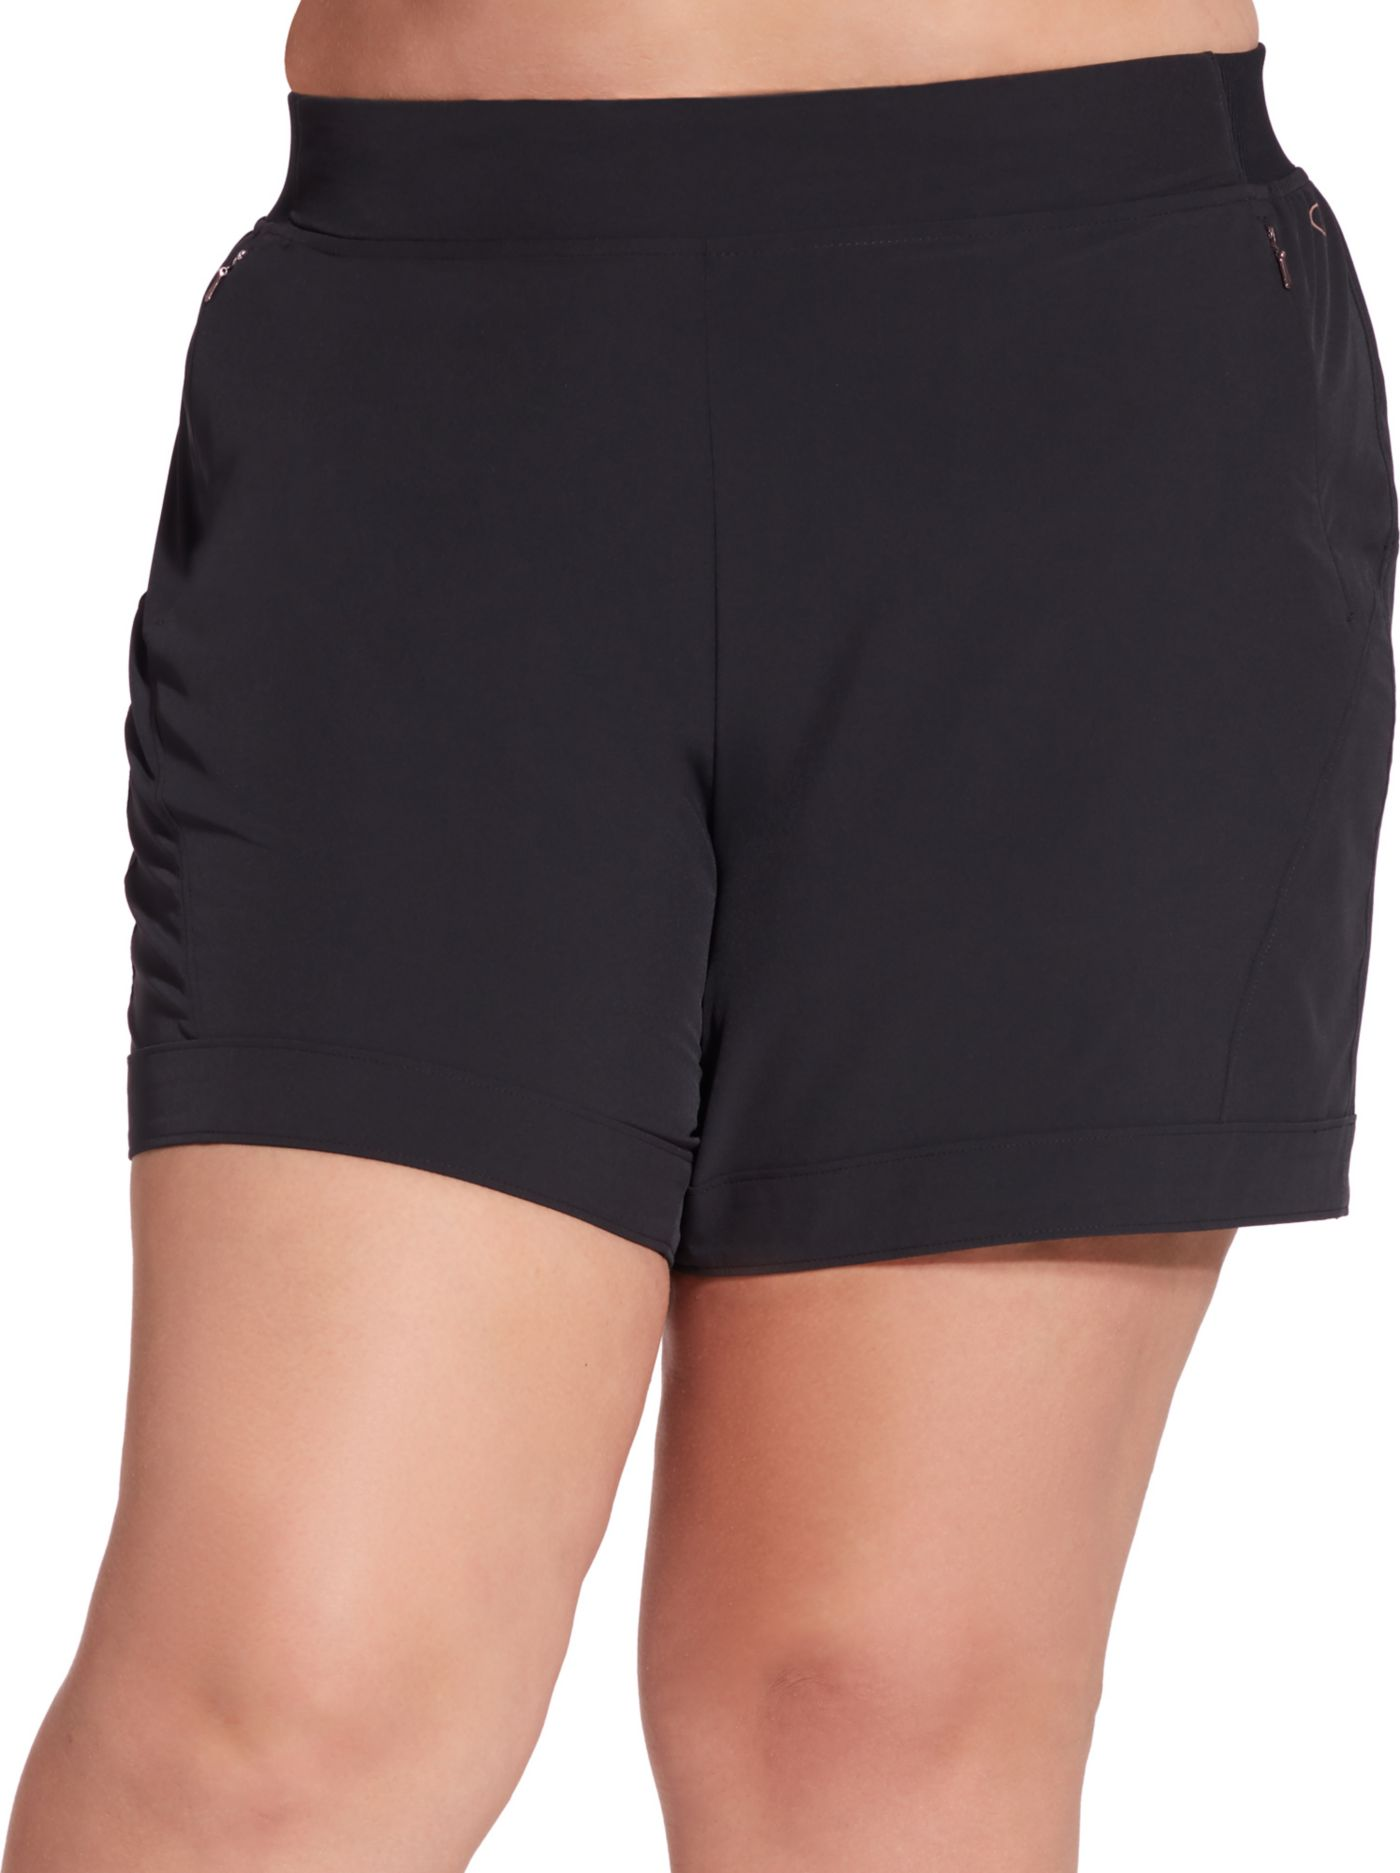 CALIA by Carrie Underwood Women's Plus Size Anywhere 5'' Cuff Shorts